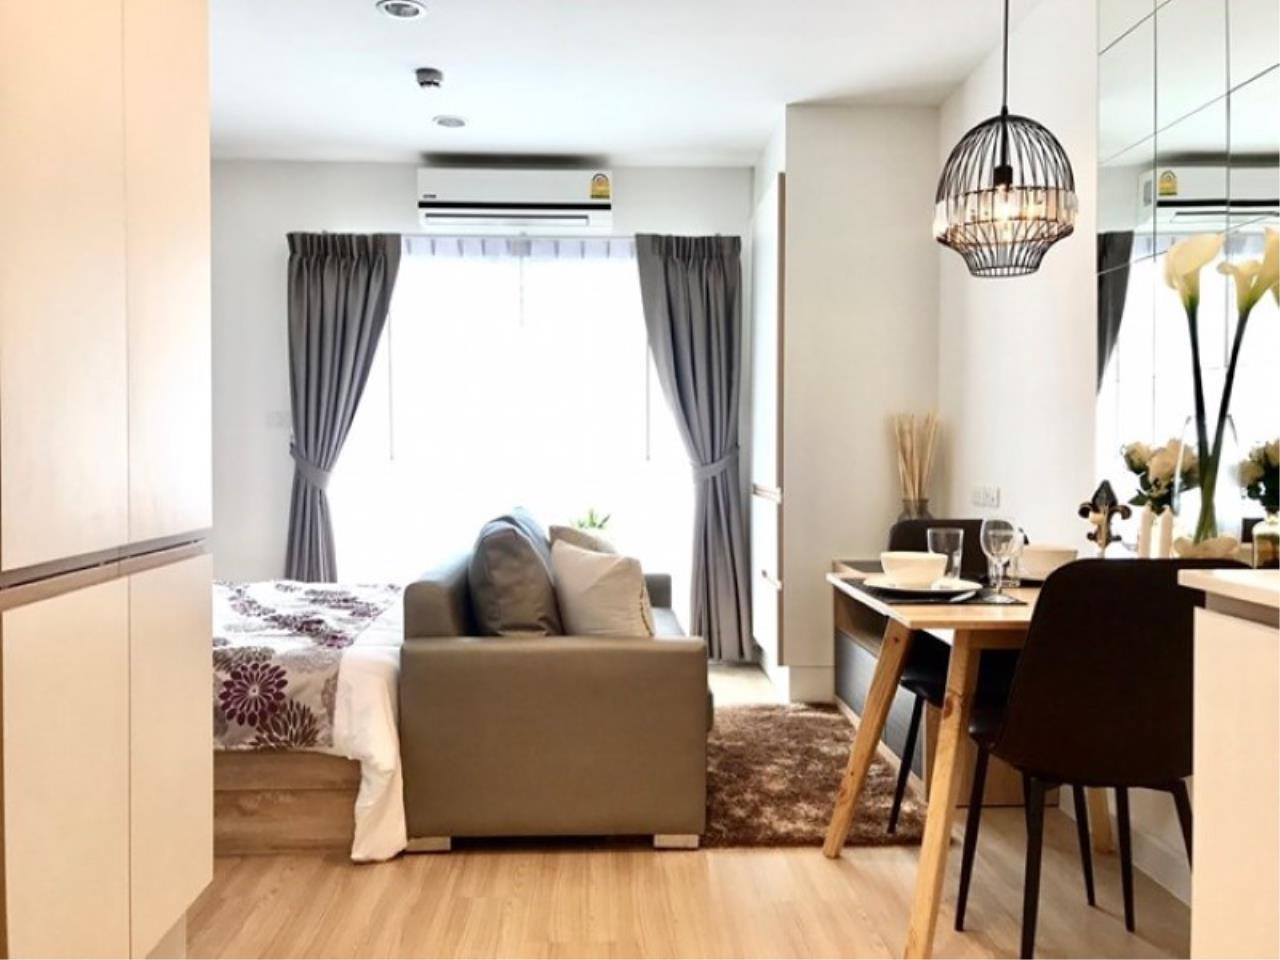 Century21 Skylux Agency's The Nest Sukhumvit 22 / Condo For Rent / 1 Bedroom / 25 SQM / MRT Queen Sirikit National Convention Centre / Bangkok 6